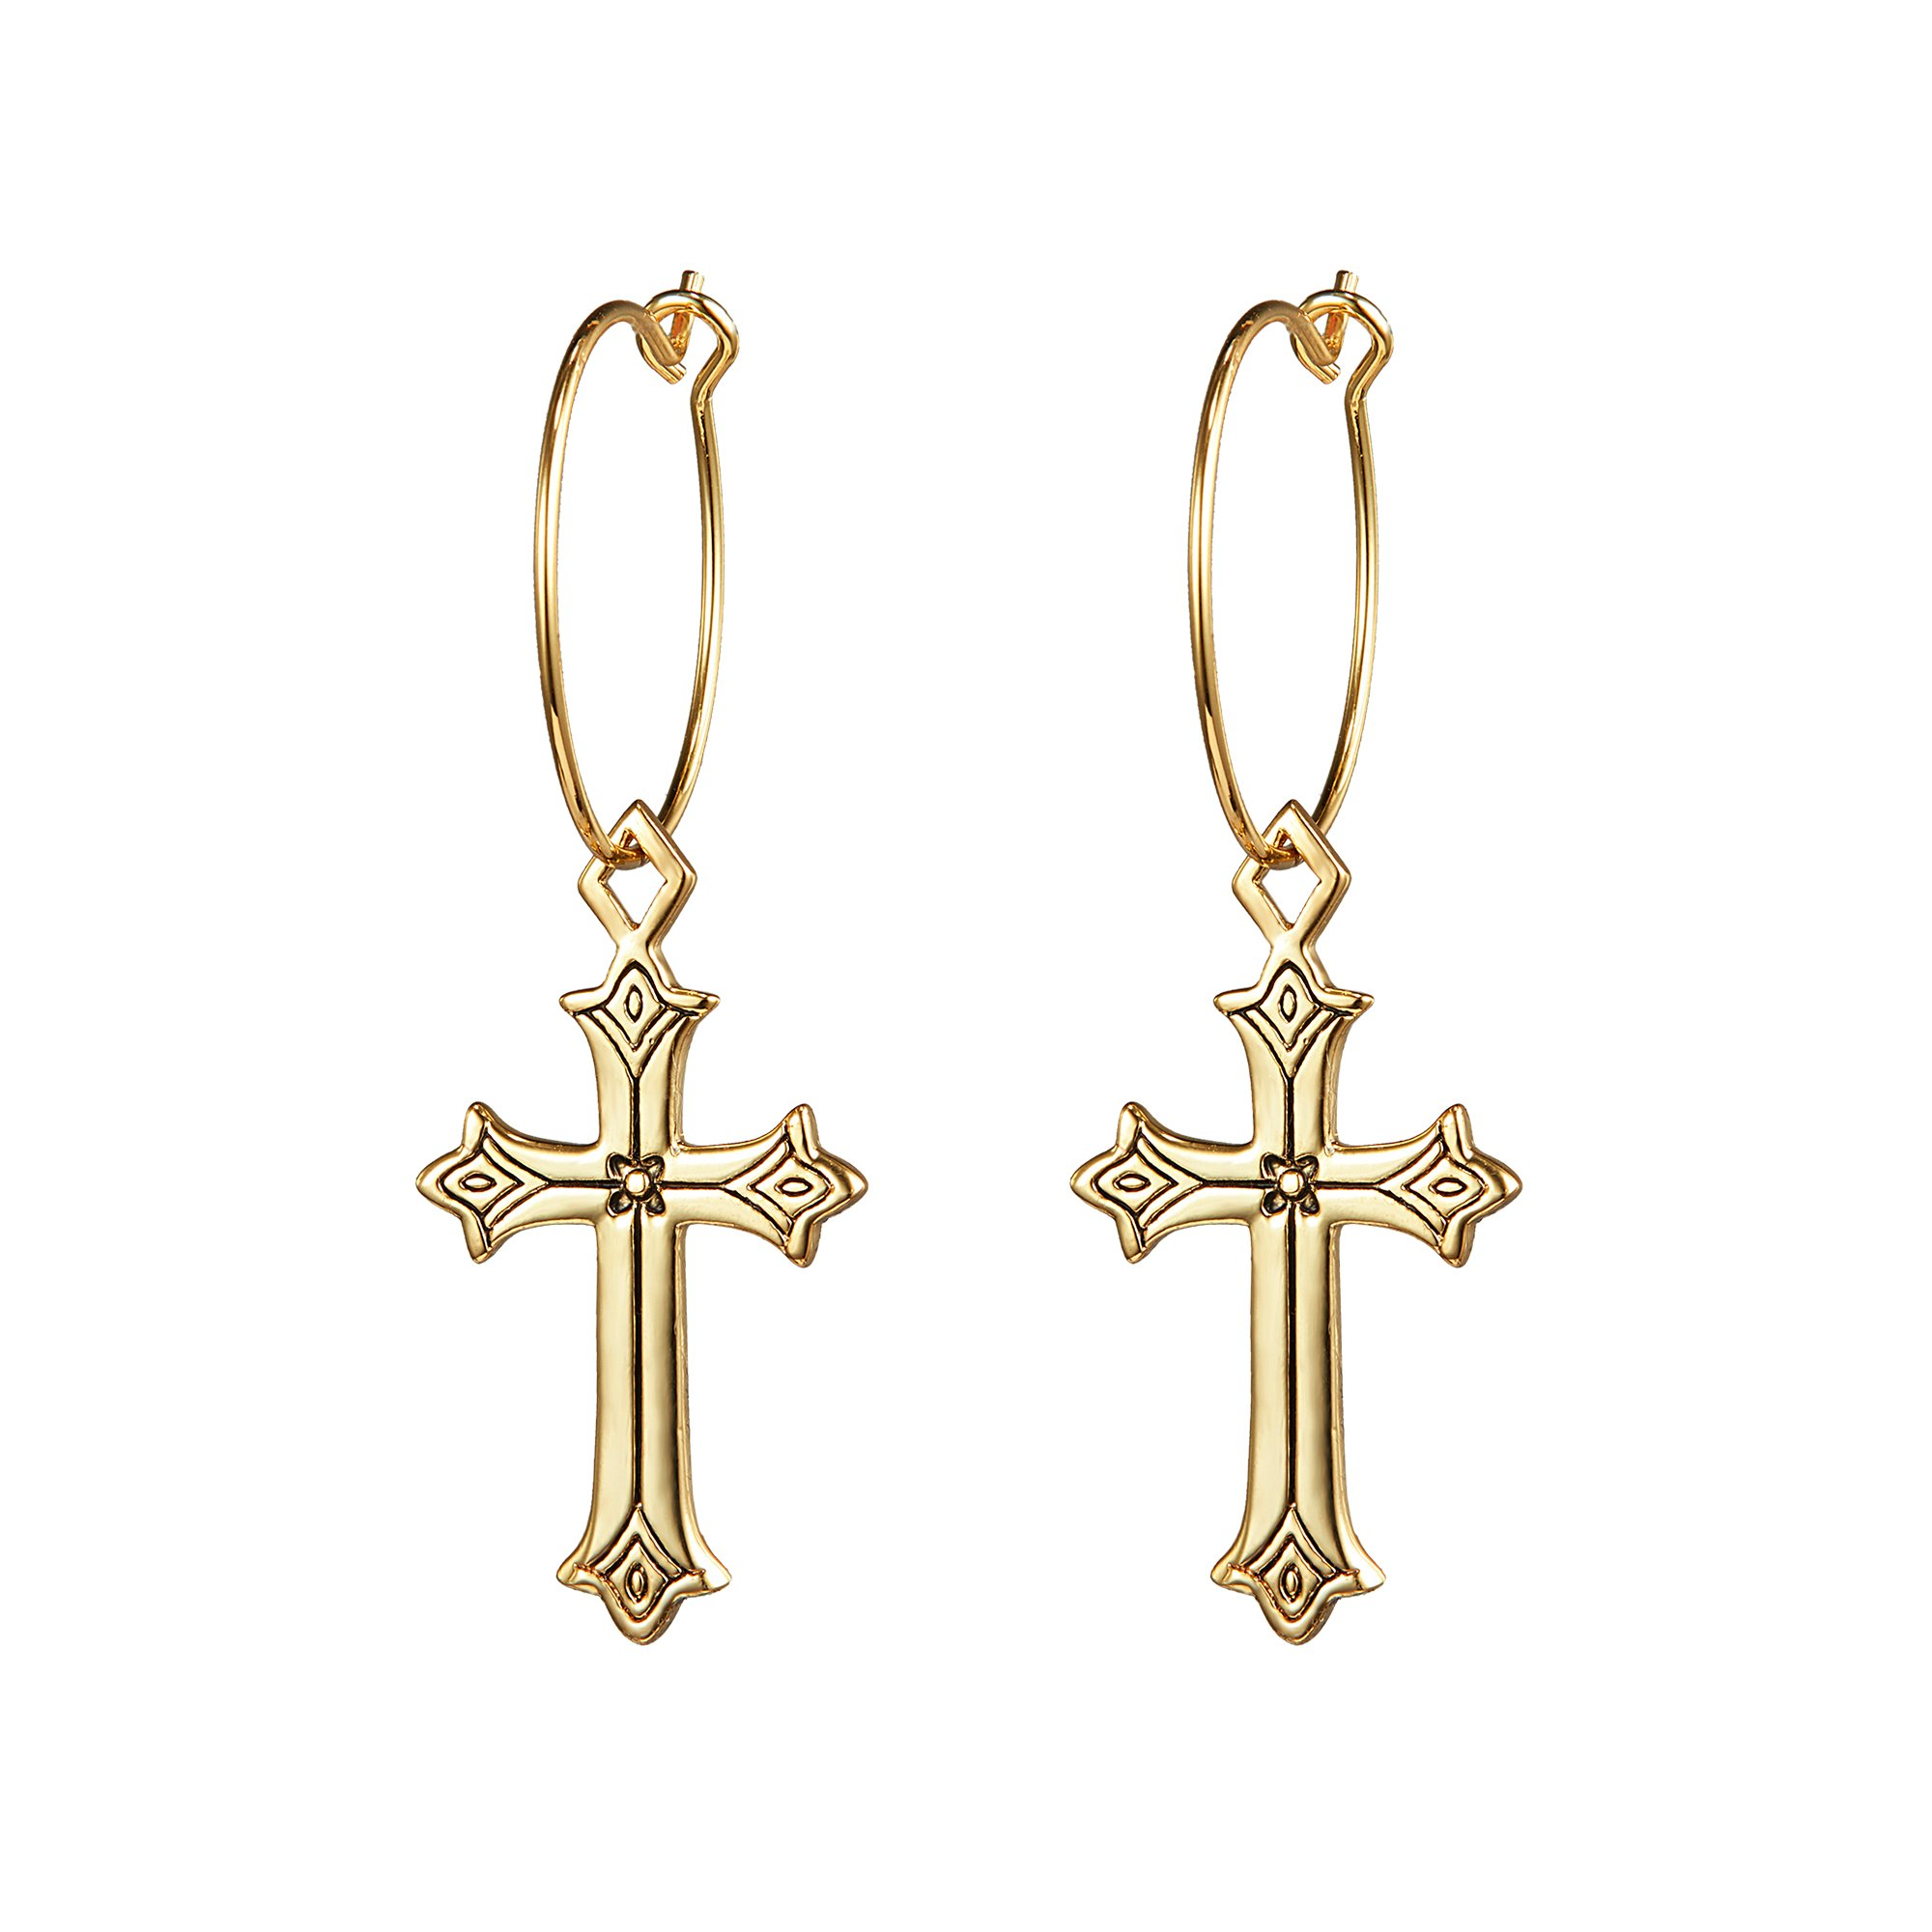 Cross Earrings 14K Gold Plated Dangle Vintage Hoop Cross Earrings for Women Girls